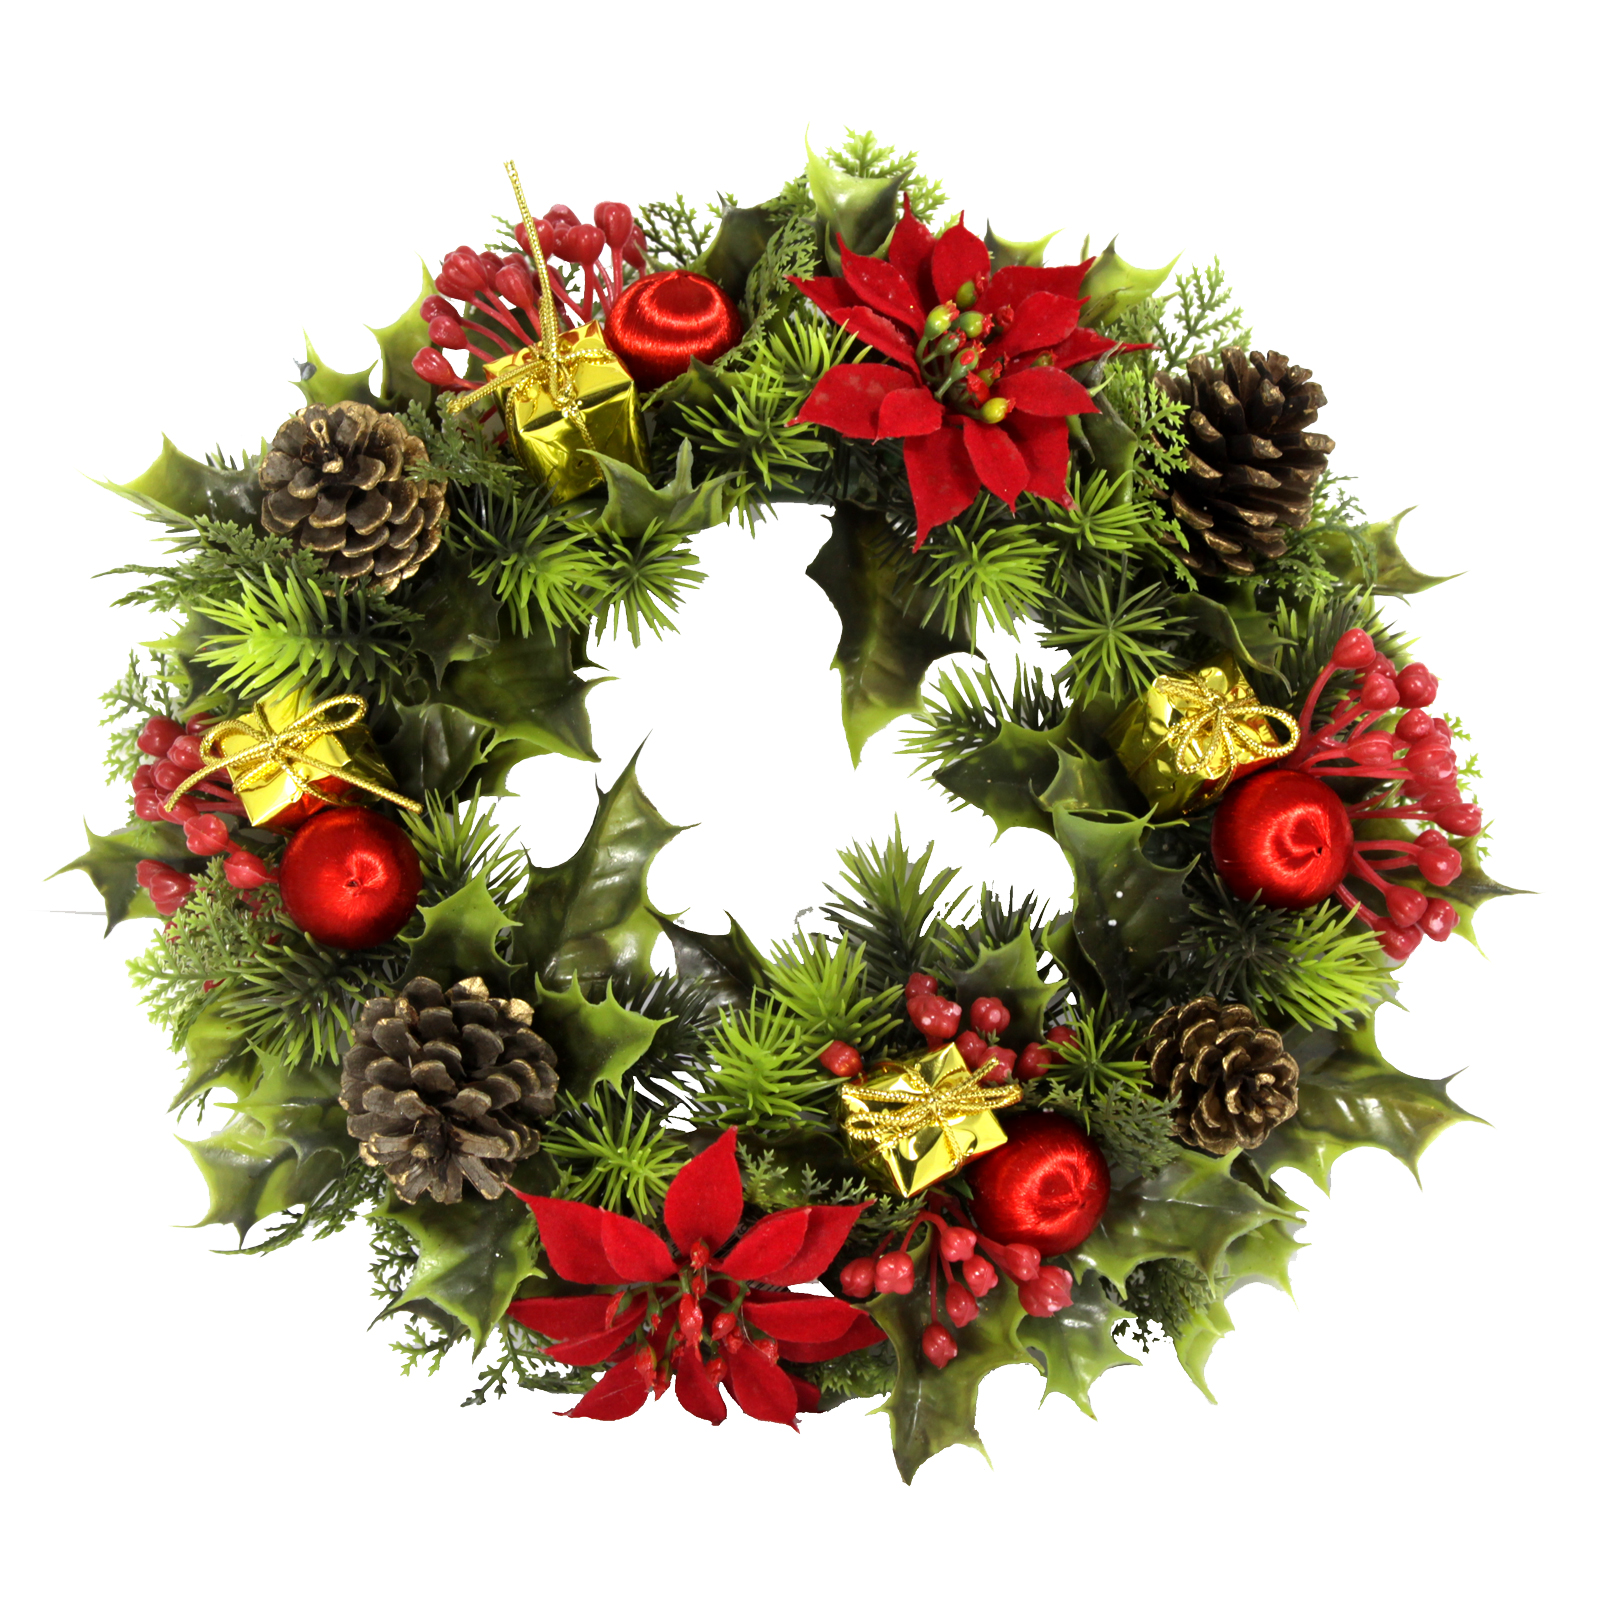 PLASTIC HOLLY WREATH POINSETTIAS RED 11 INCH